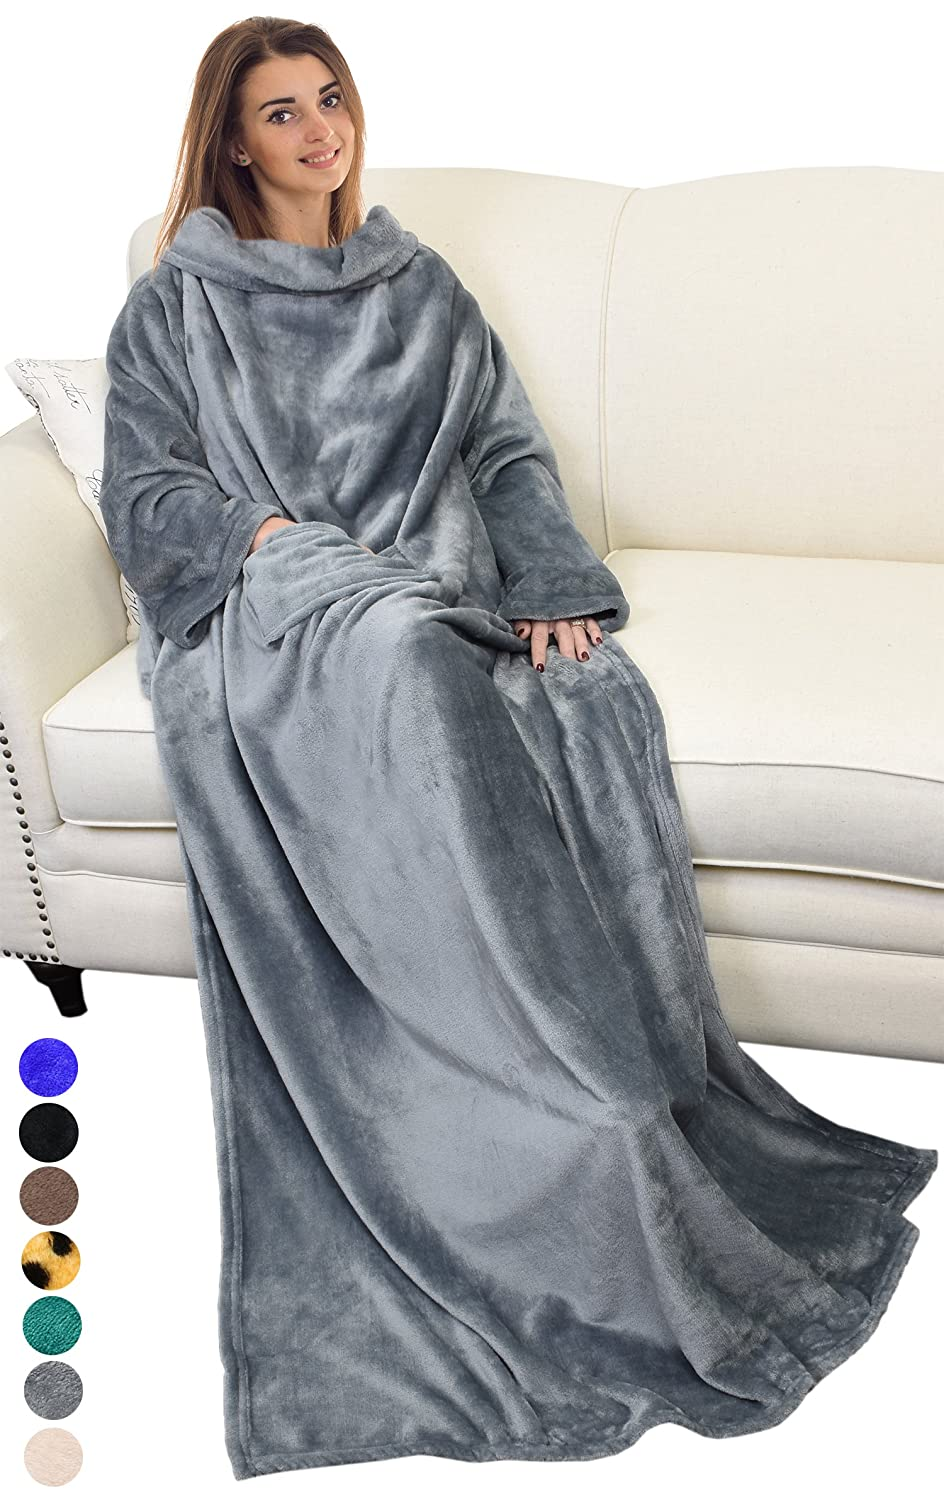 Catalonia Platinum Blanket with Sleeves, Ultra Plush Fleece Warm Blankets for Adult Women Men 185cm x 130cm, Black